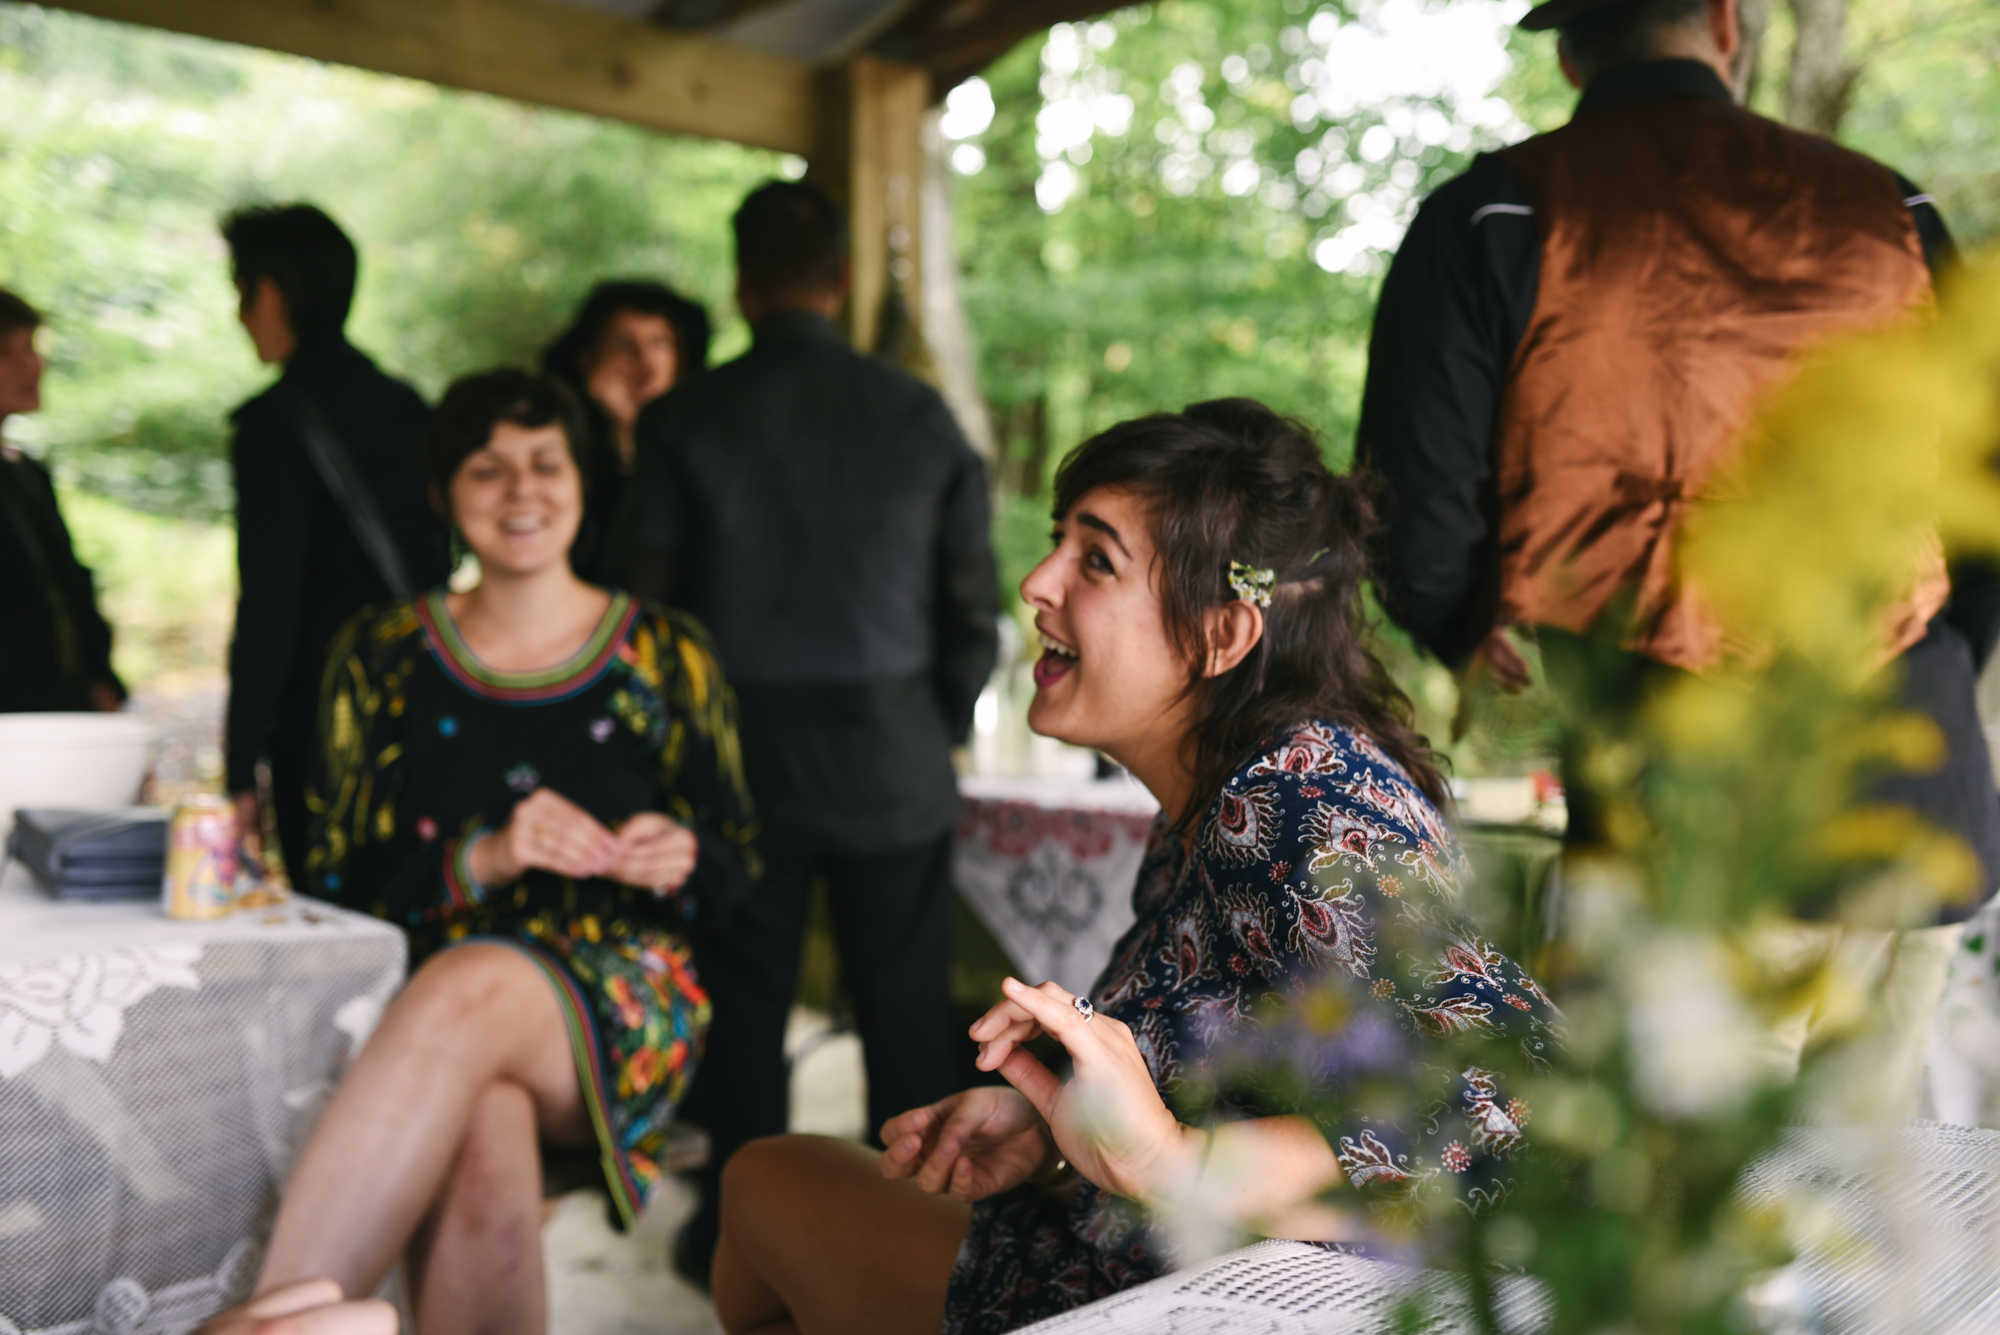 Mountain Wedding, Outdoors, Rustic, West Virginia, Maryland Wedding Photographer, DIY, Casual, Guests laughing and chatting outdoors